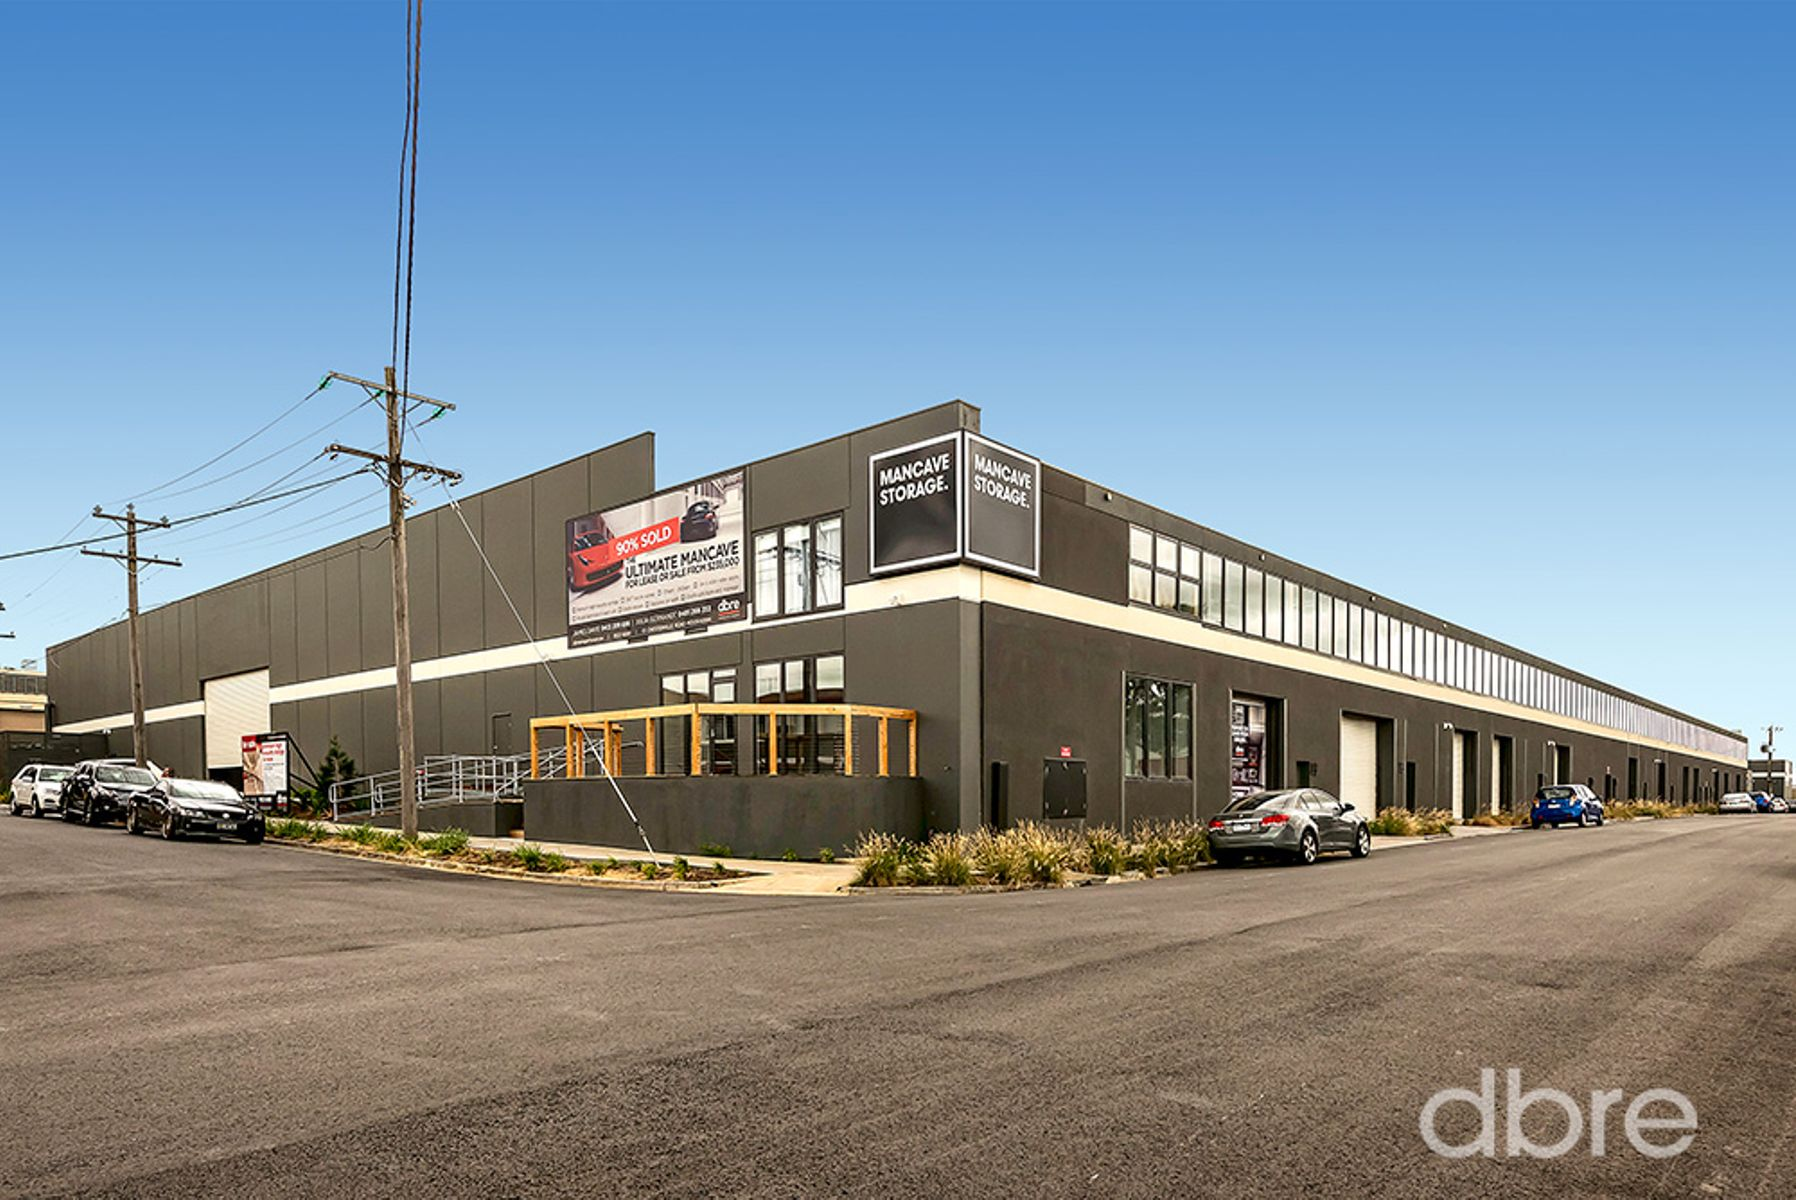 Office Furniture Moorabbin Dbre Property Commercial And Industrial 36 9 19